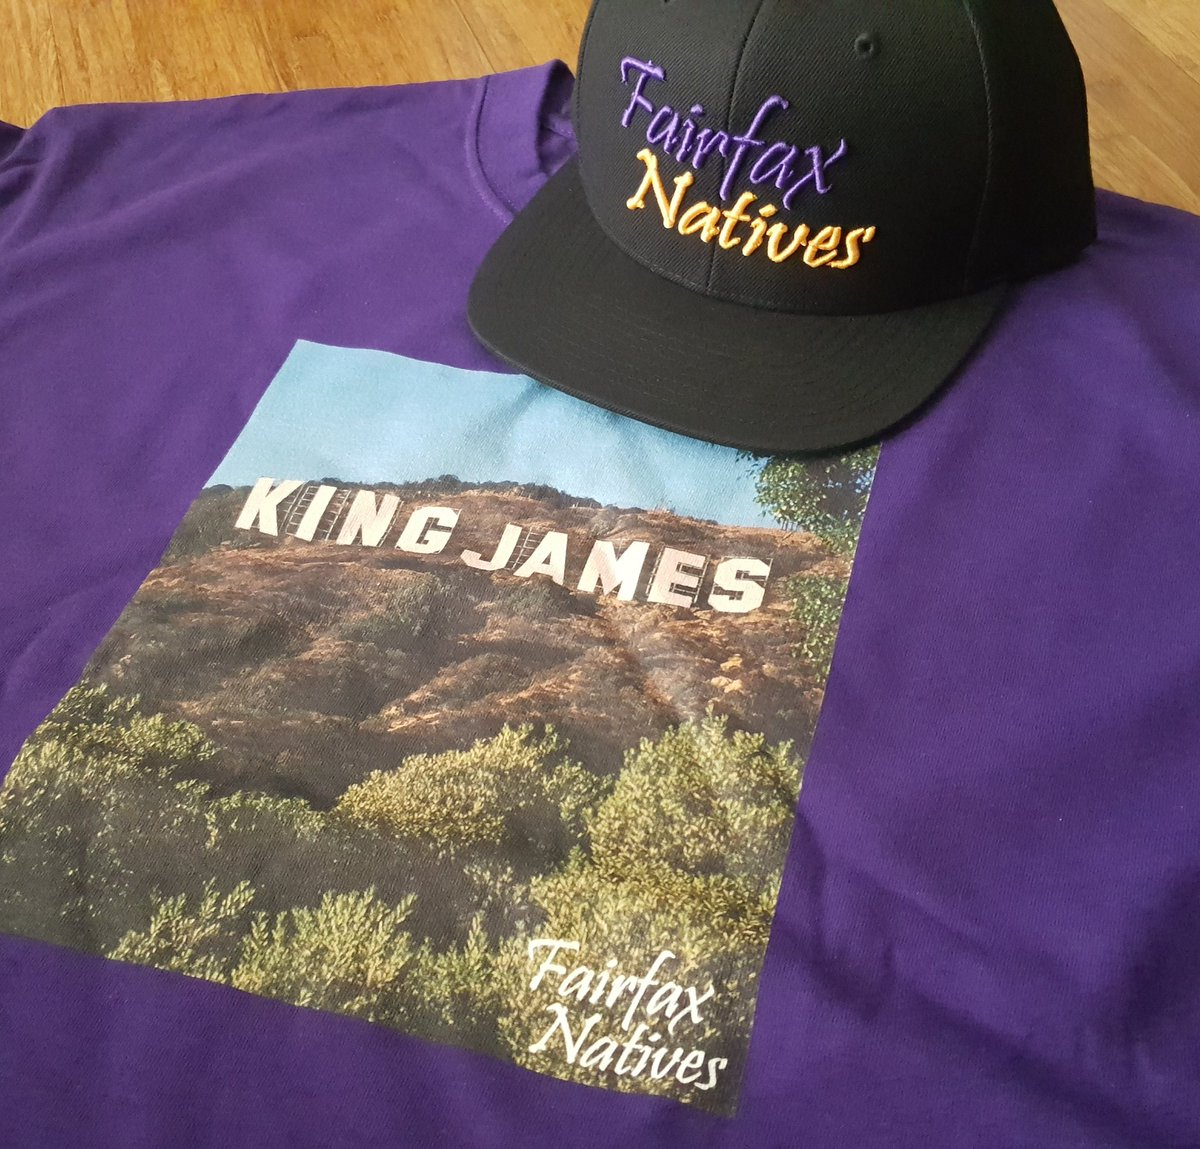 c1f463f04 Grab our  KingJames tee while you re at it http   www.FairfaxNatives.com  pic.twitter.com MaqB7AJsJo · LeBron James ...